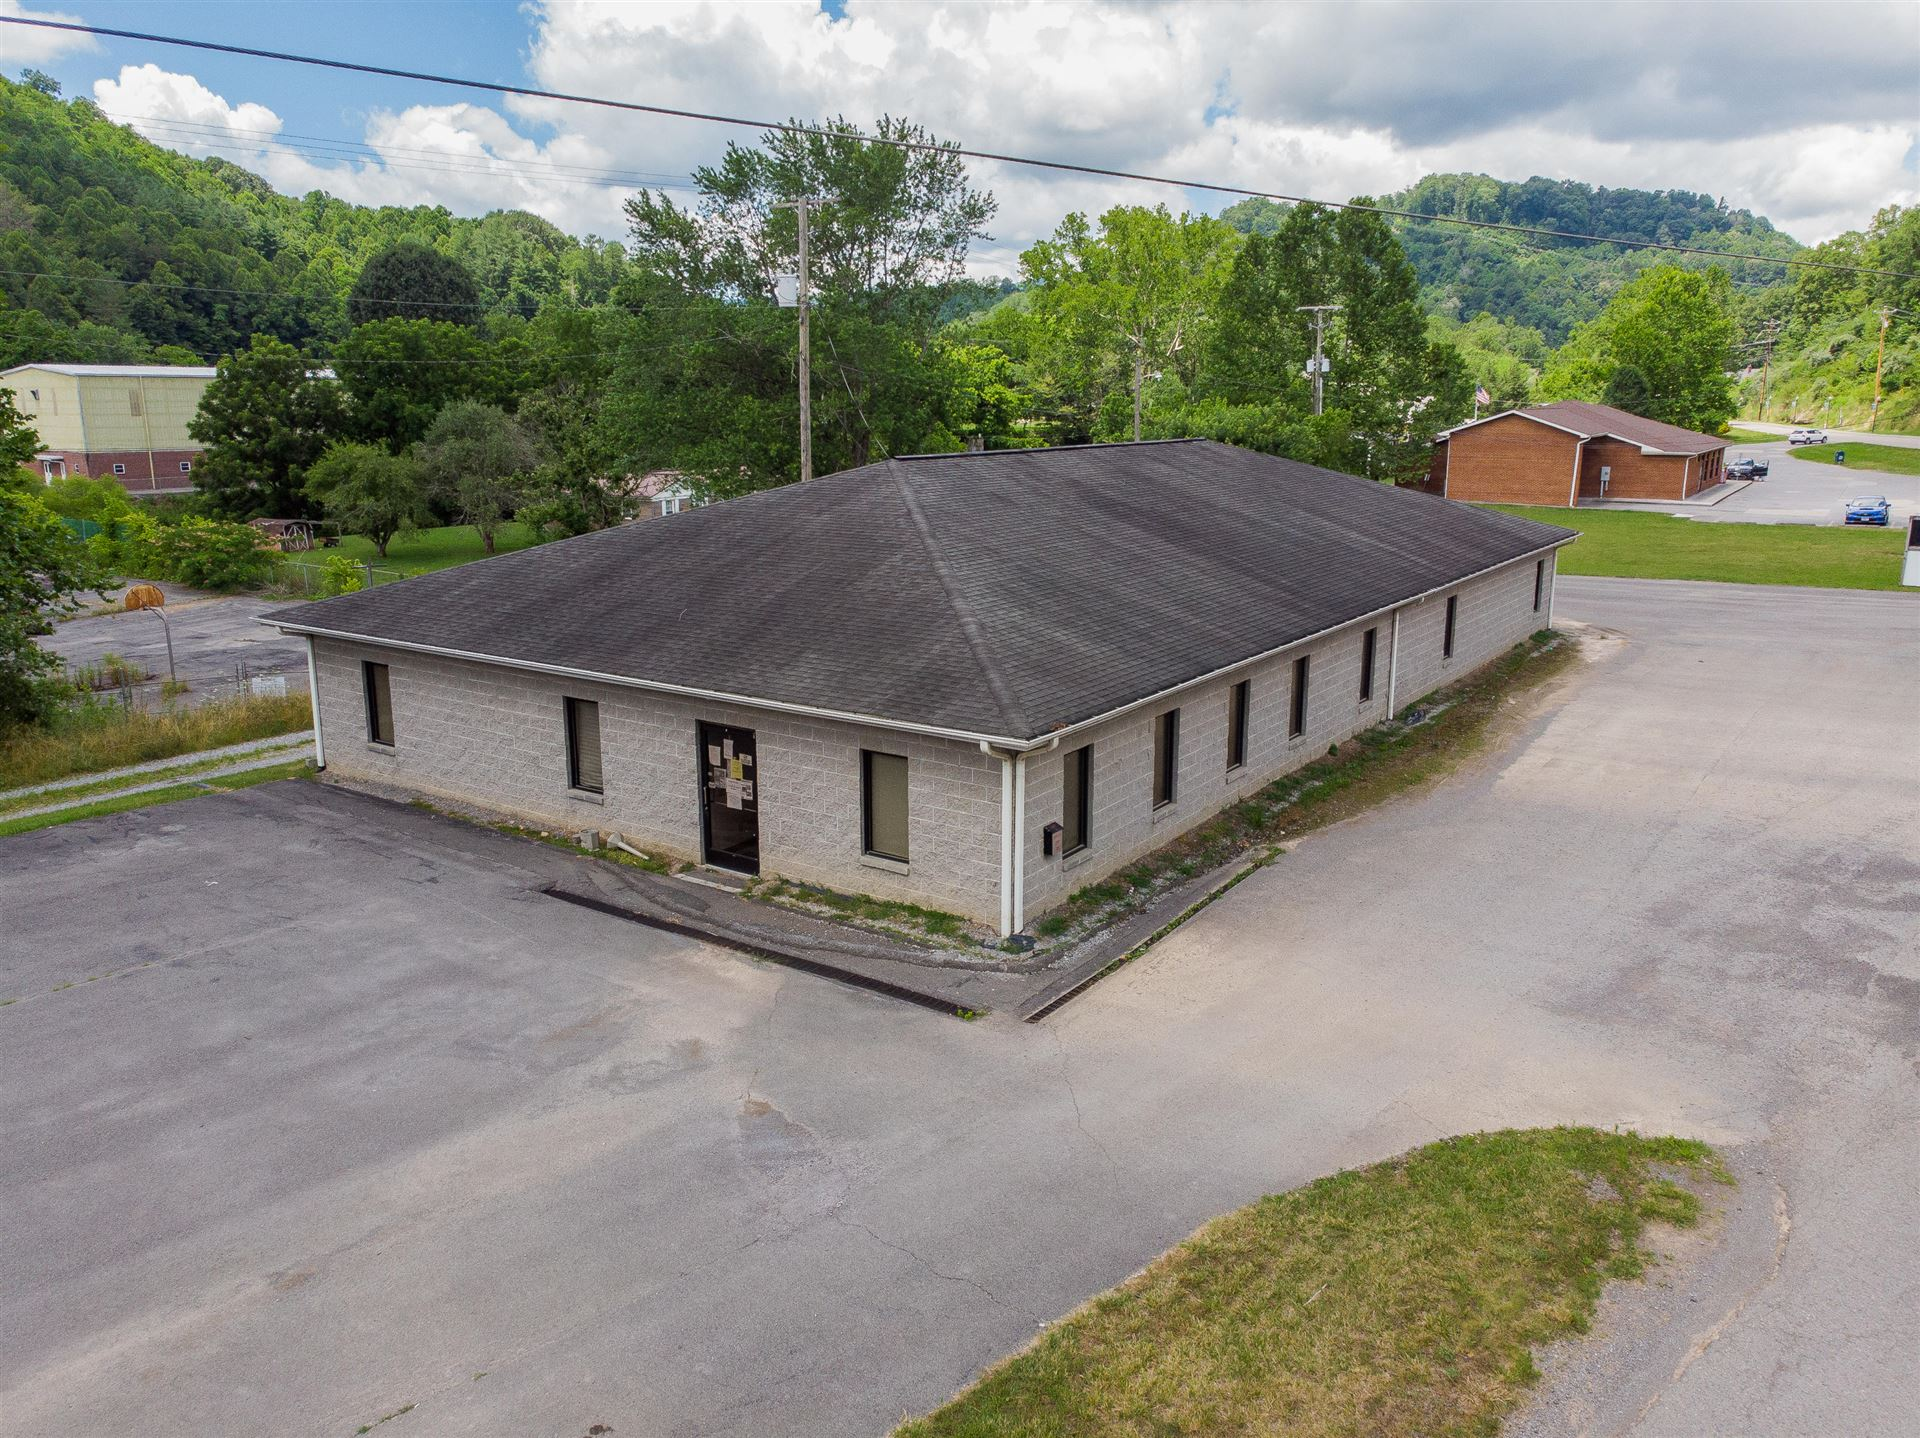 Photo of 11313 Highland Avenue, Pound, VA 24279 (MLS # 9910713)